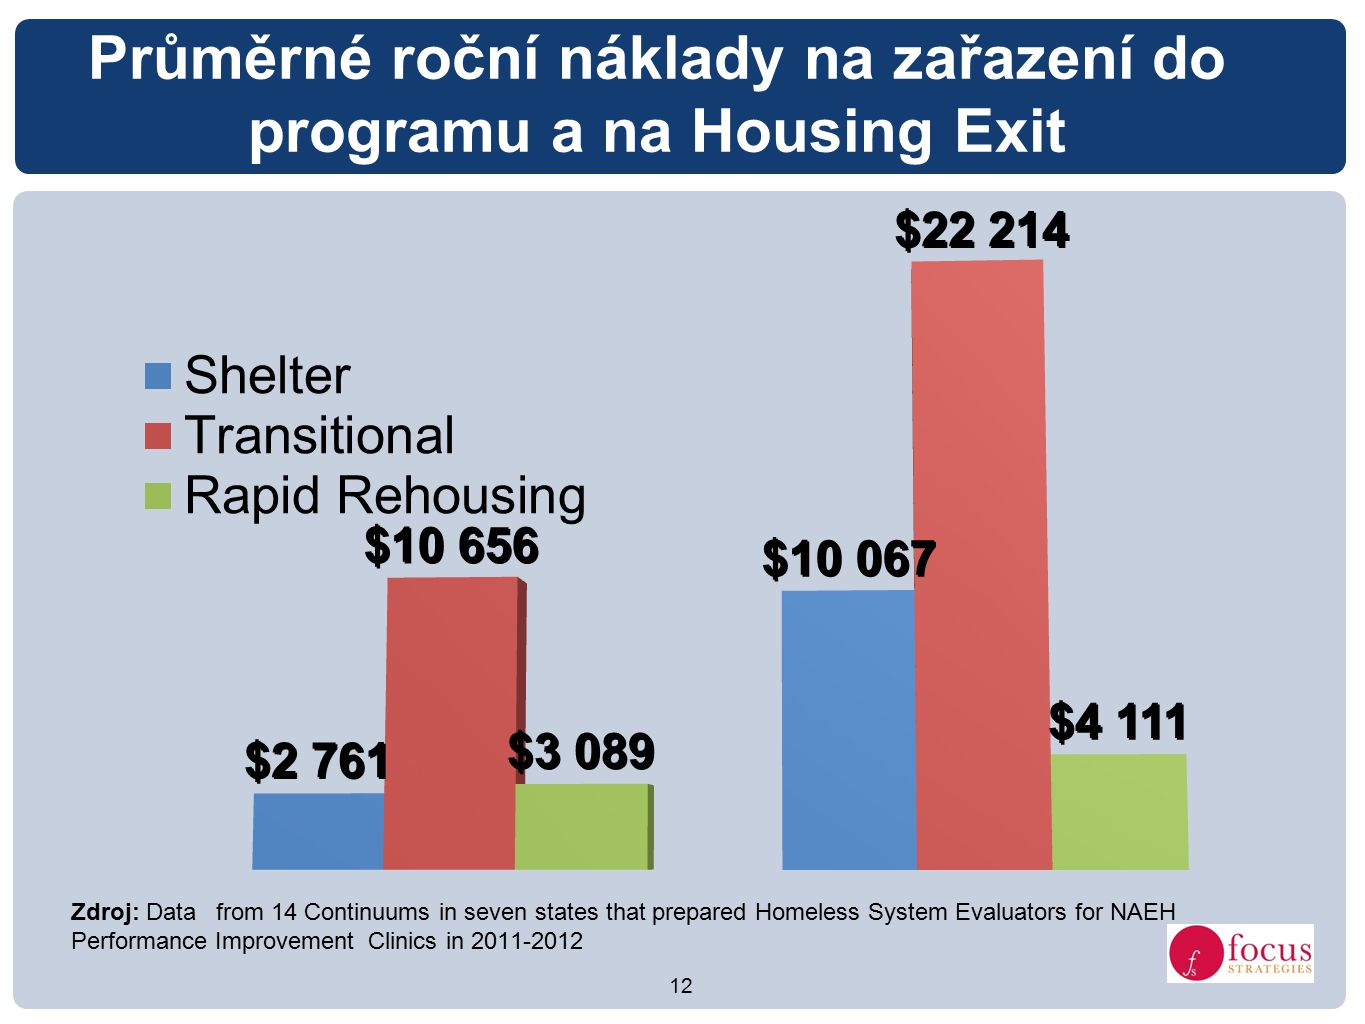 12 Průměrné roční náklady na zařazení do programu a na Housing Exit Zdroj: Data from 14 Continuums in seven states that prepared Homeless System Evaluators for NAEH Performance Improvement Clinics in 2011-2012